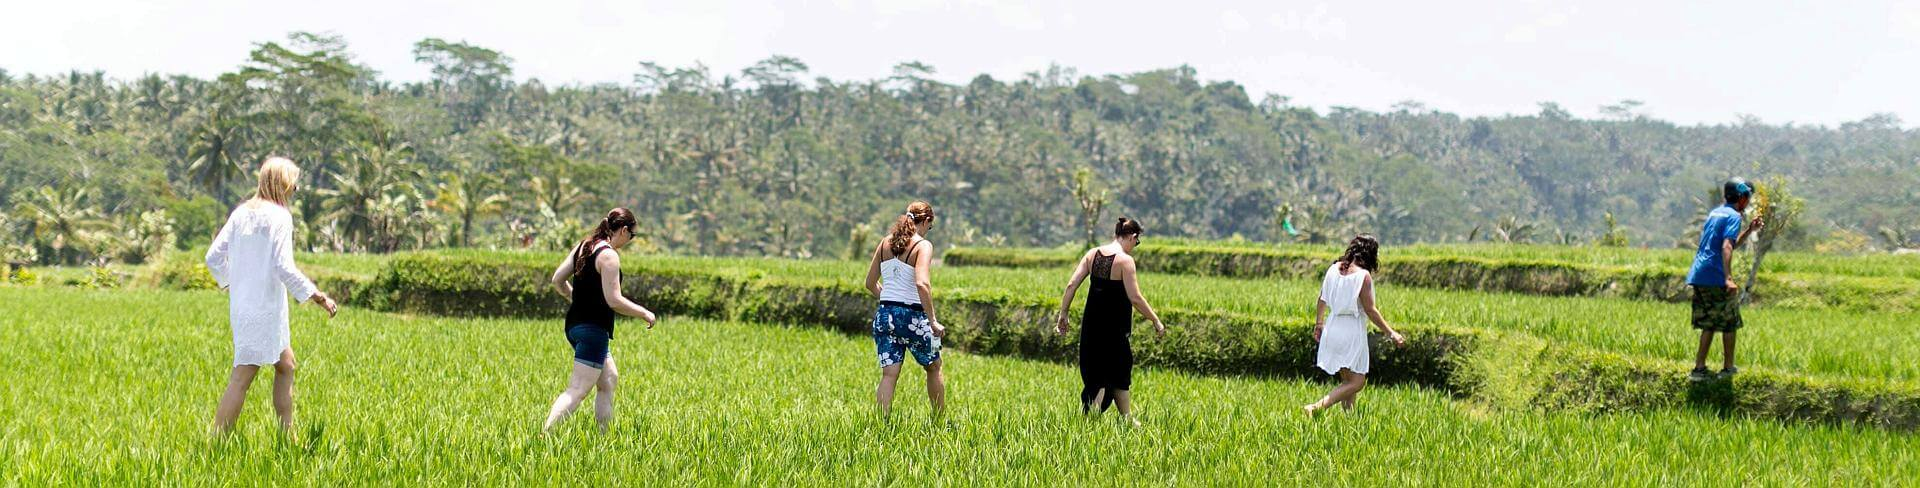 Girls walking through the Bali rice paddies